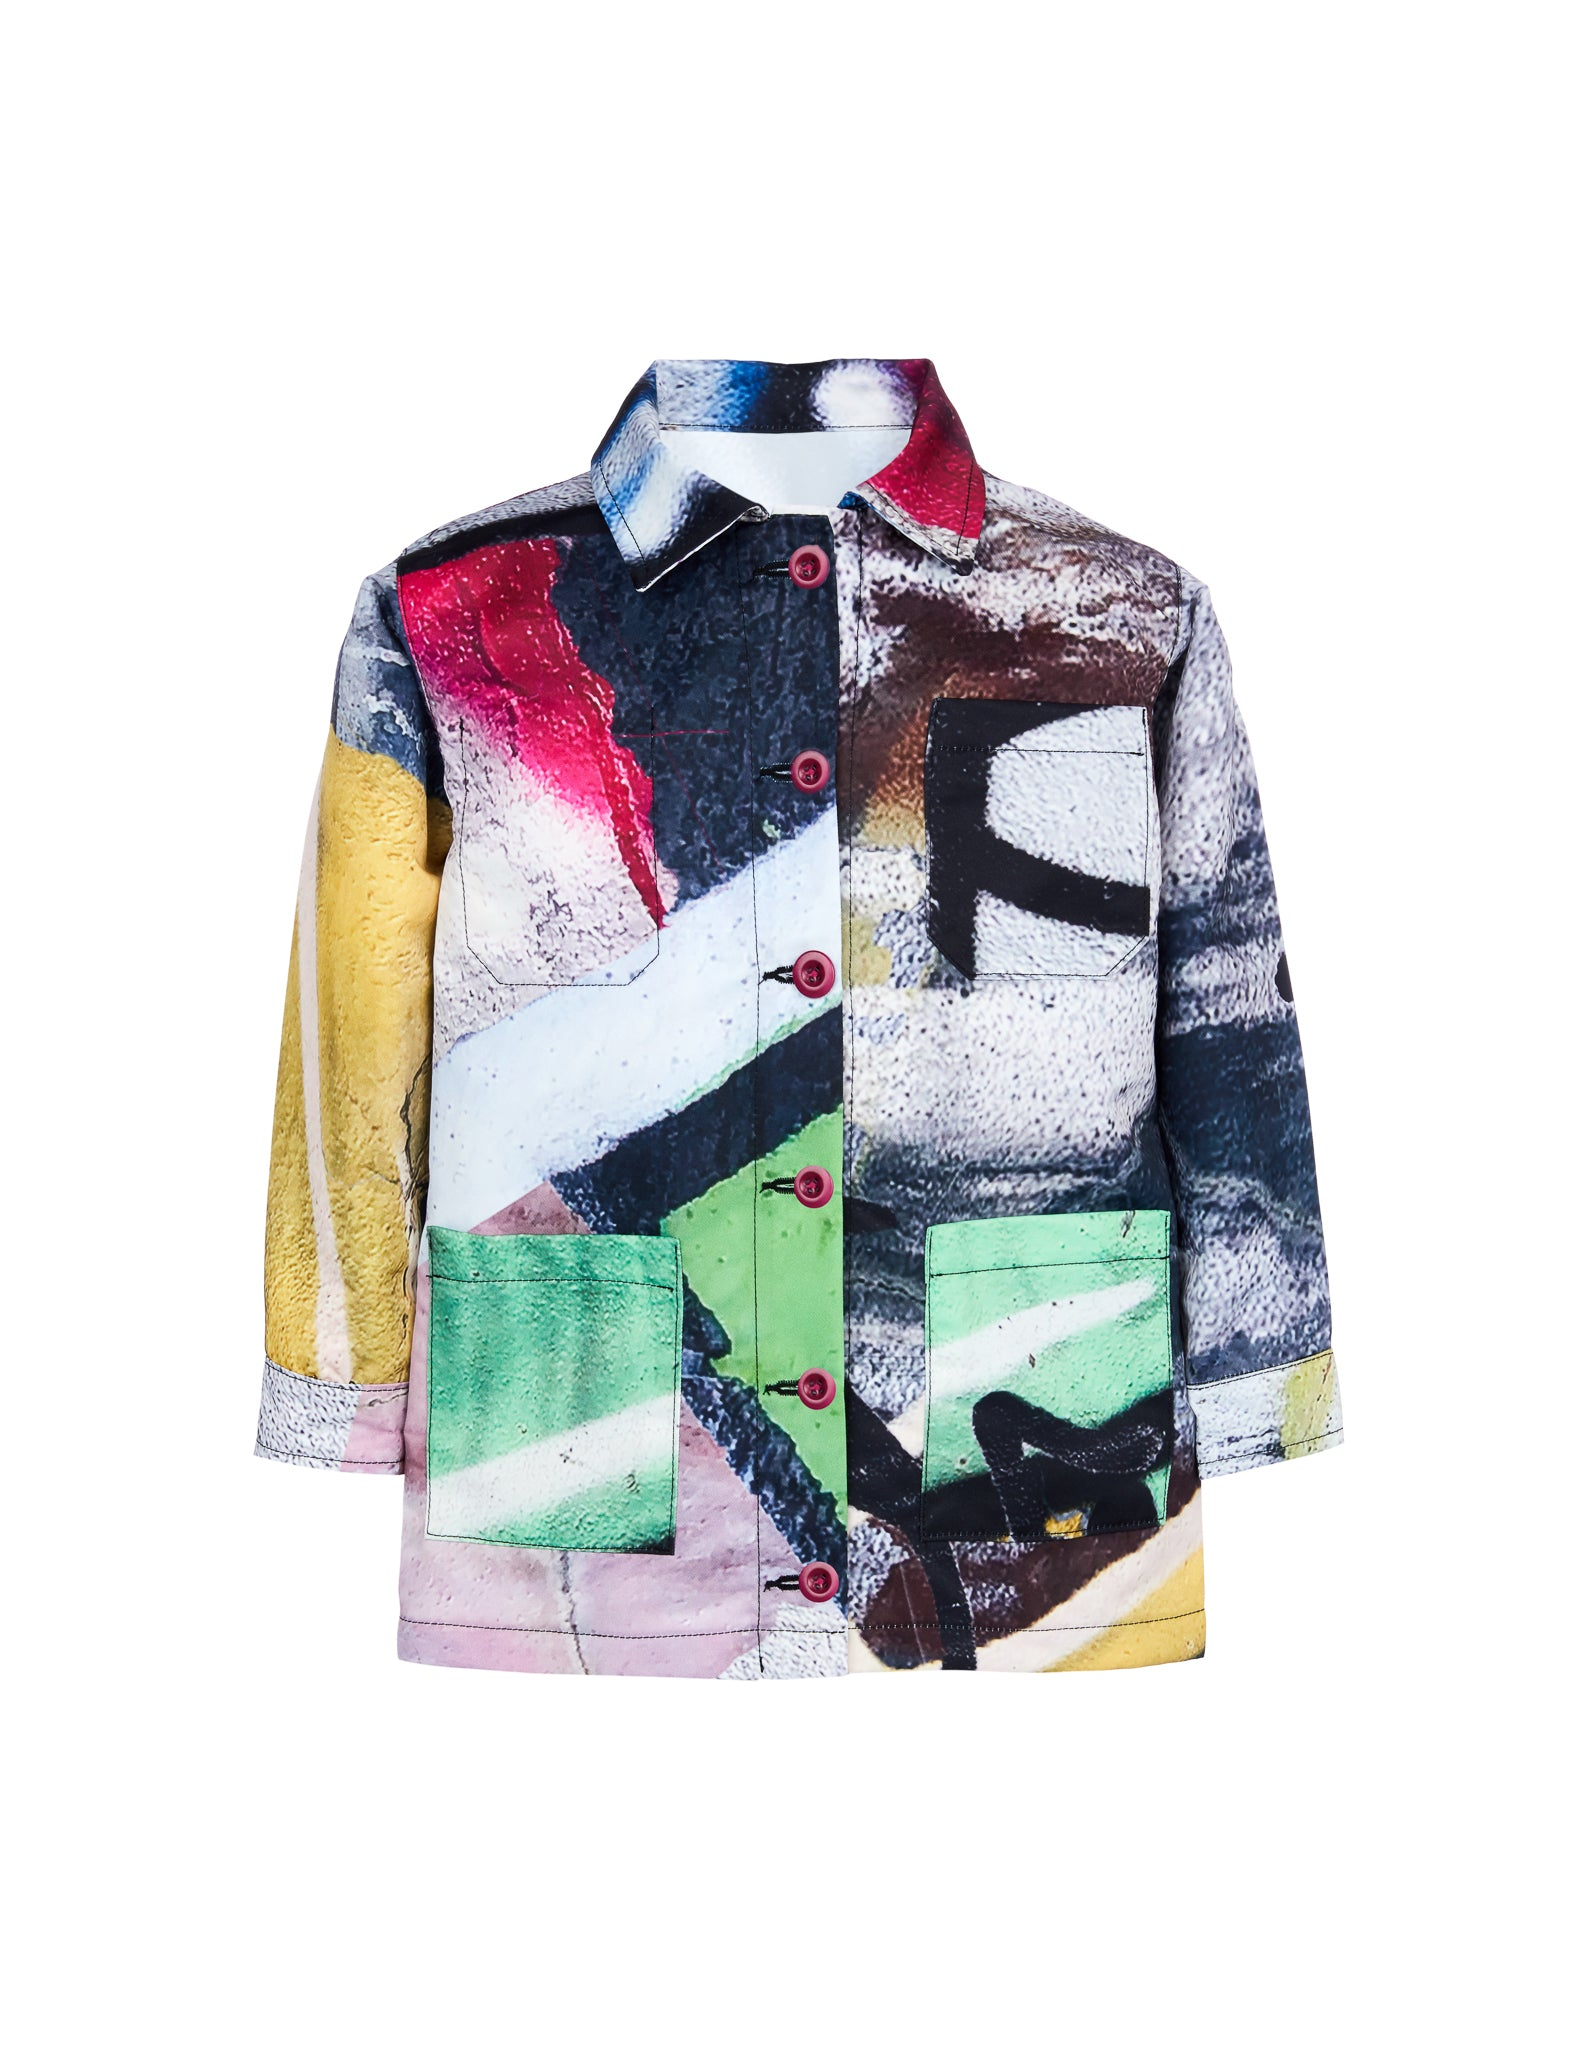 M'A KIDS WORKWEAR JACKET IN BRIGHT PRINT